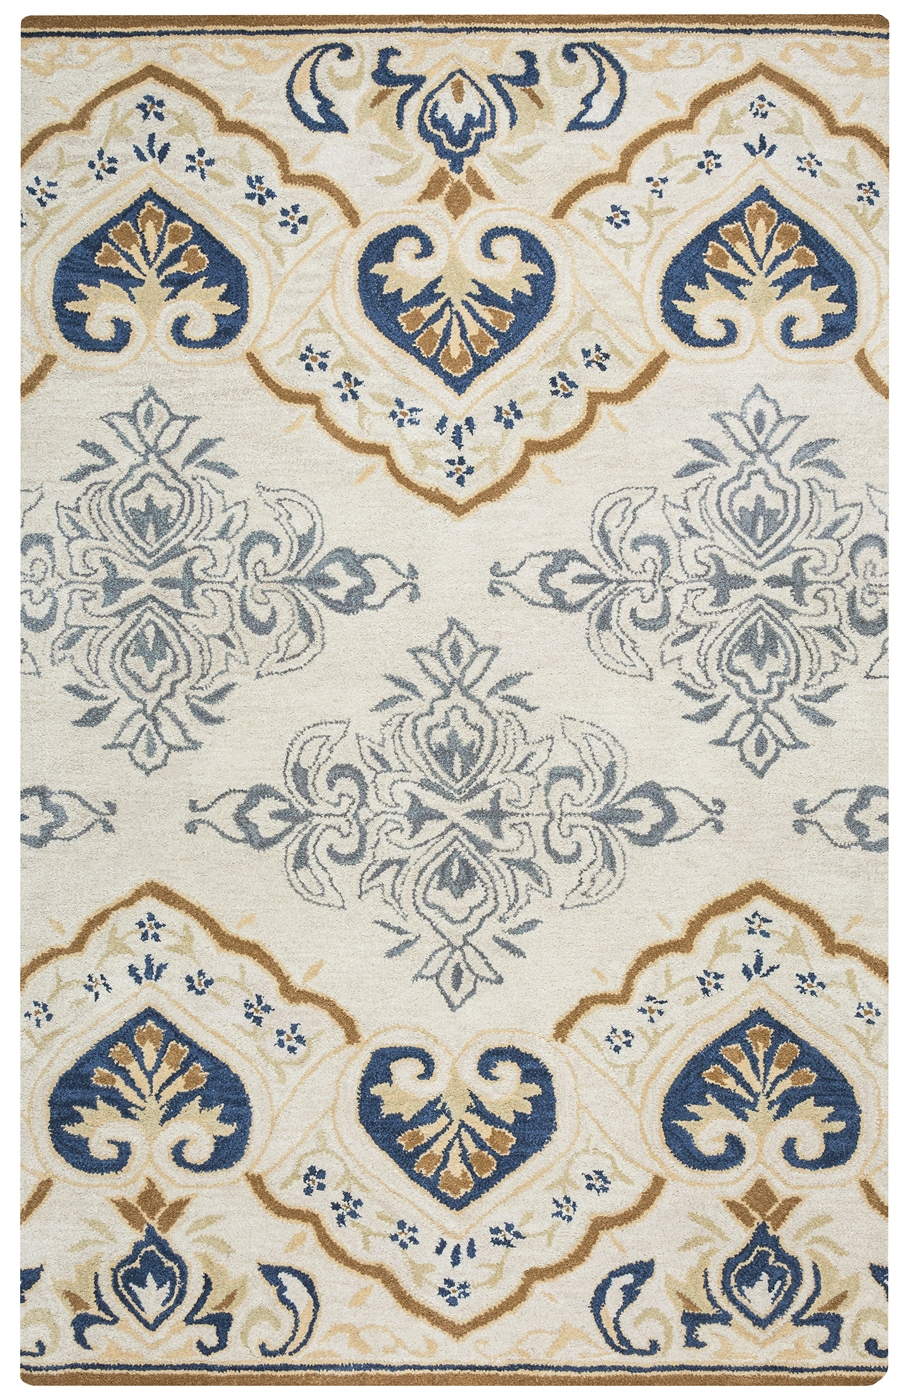 Valintino Spades Medallion Wool Area Rug In Gray Navy